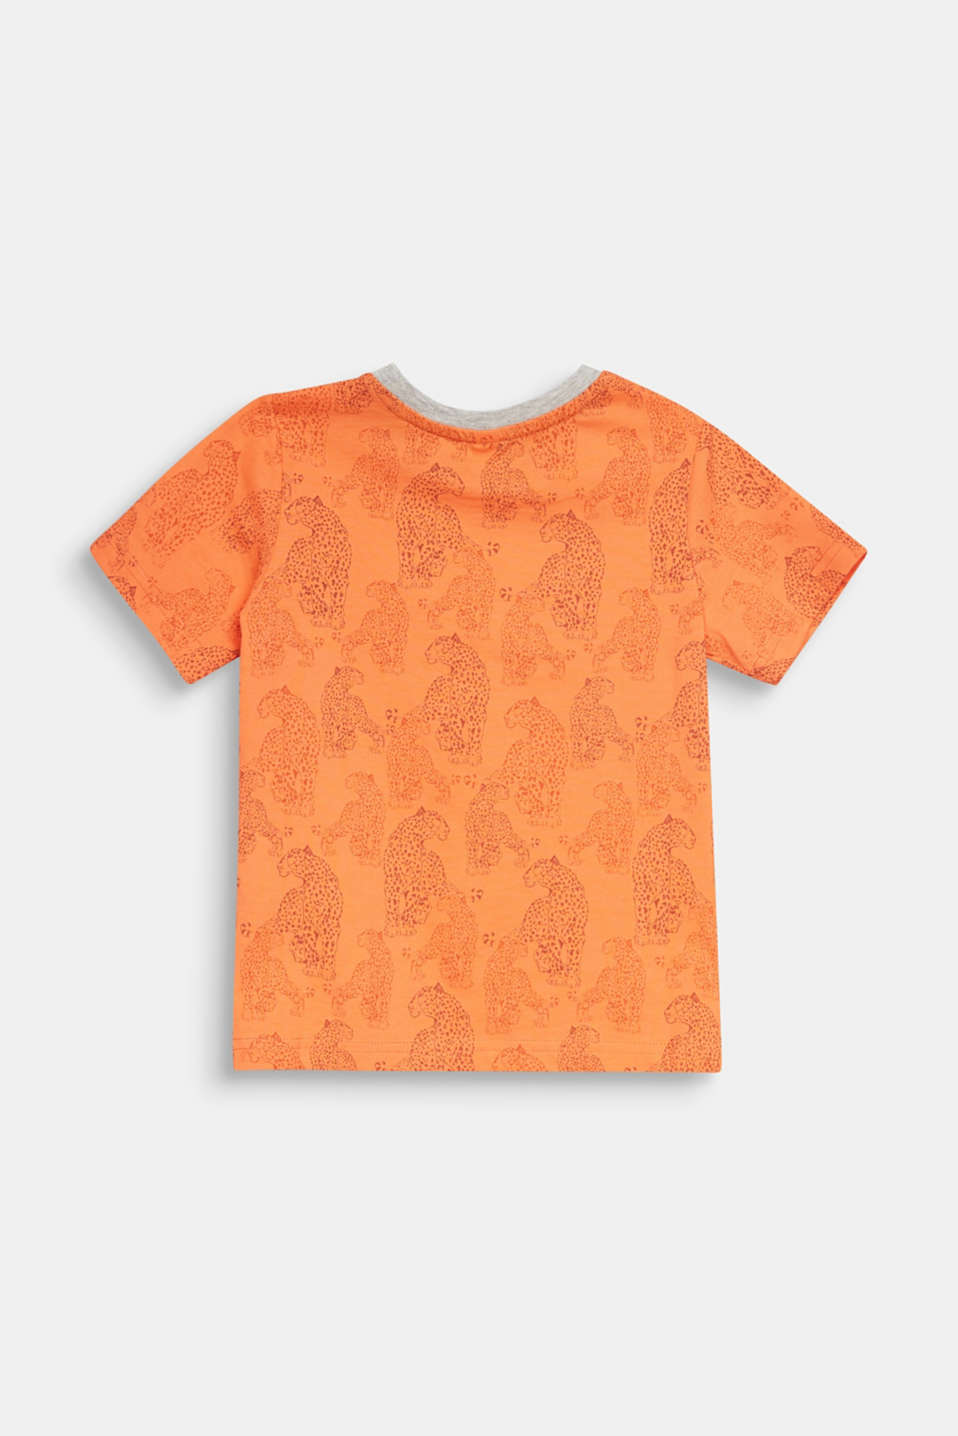 T-shirt with a leopard skin print, SUNNY ORANGE, detail image number 1